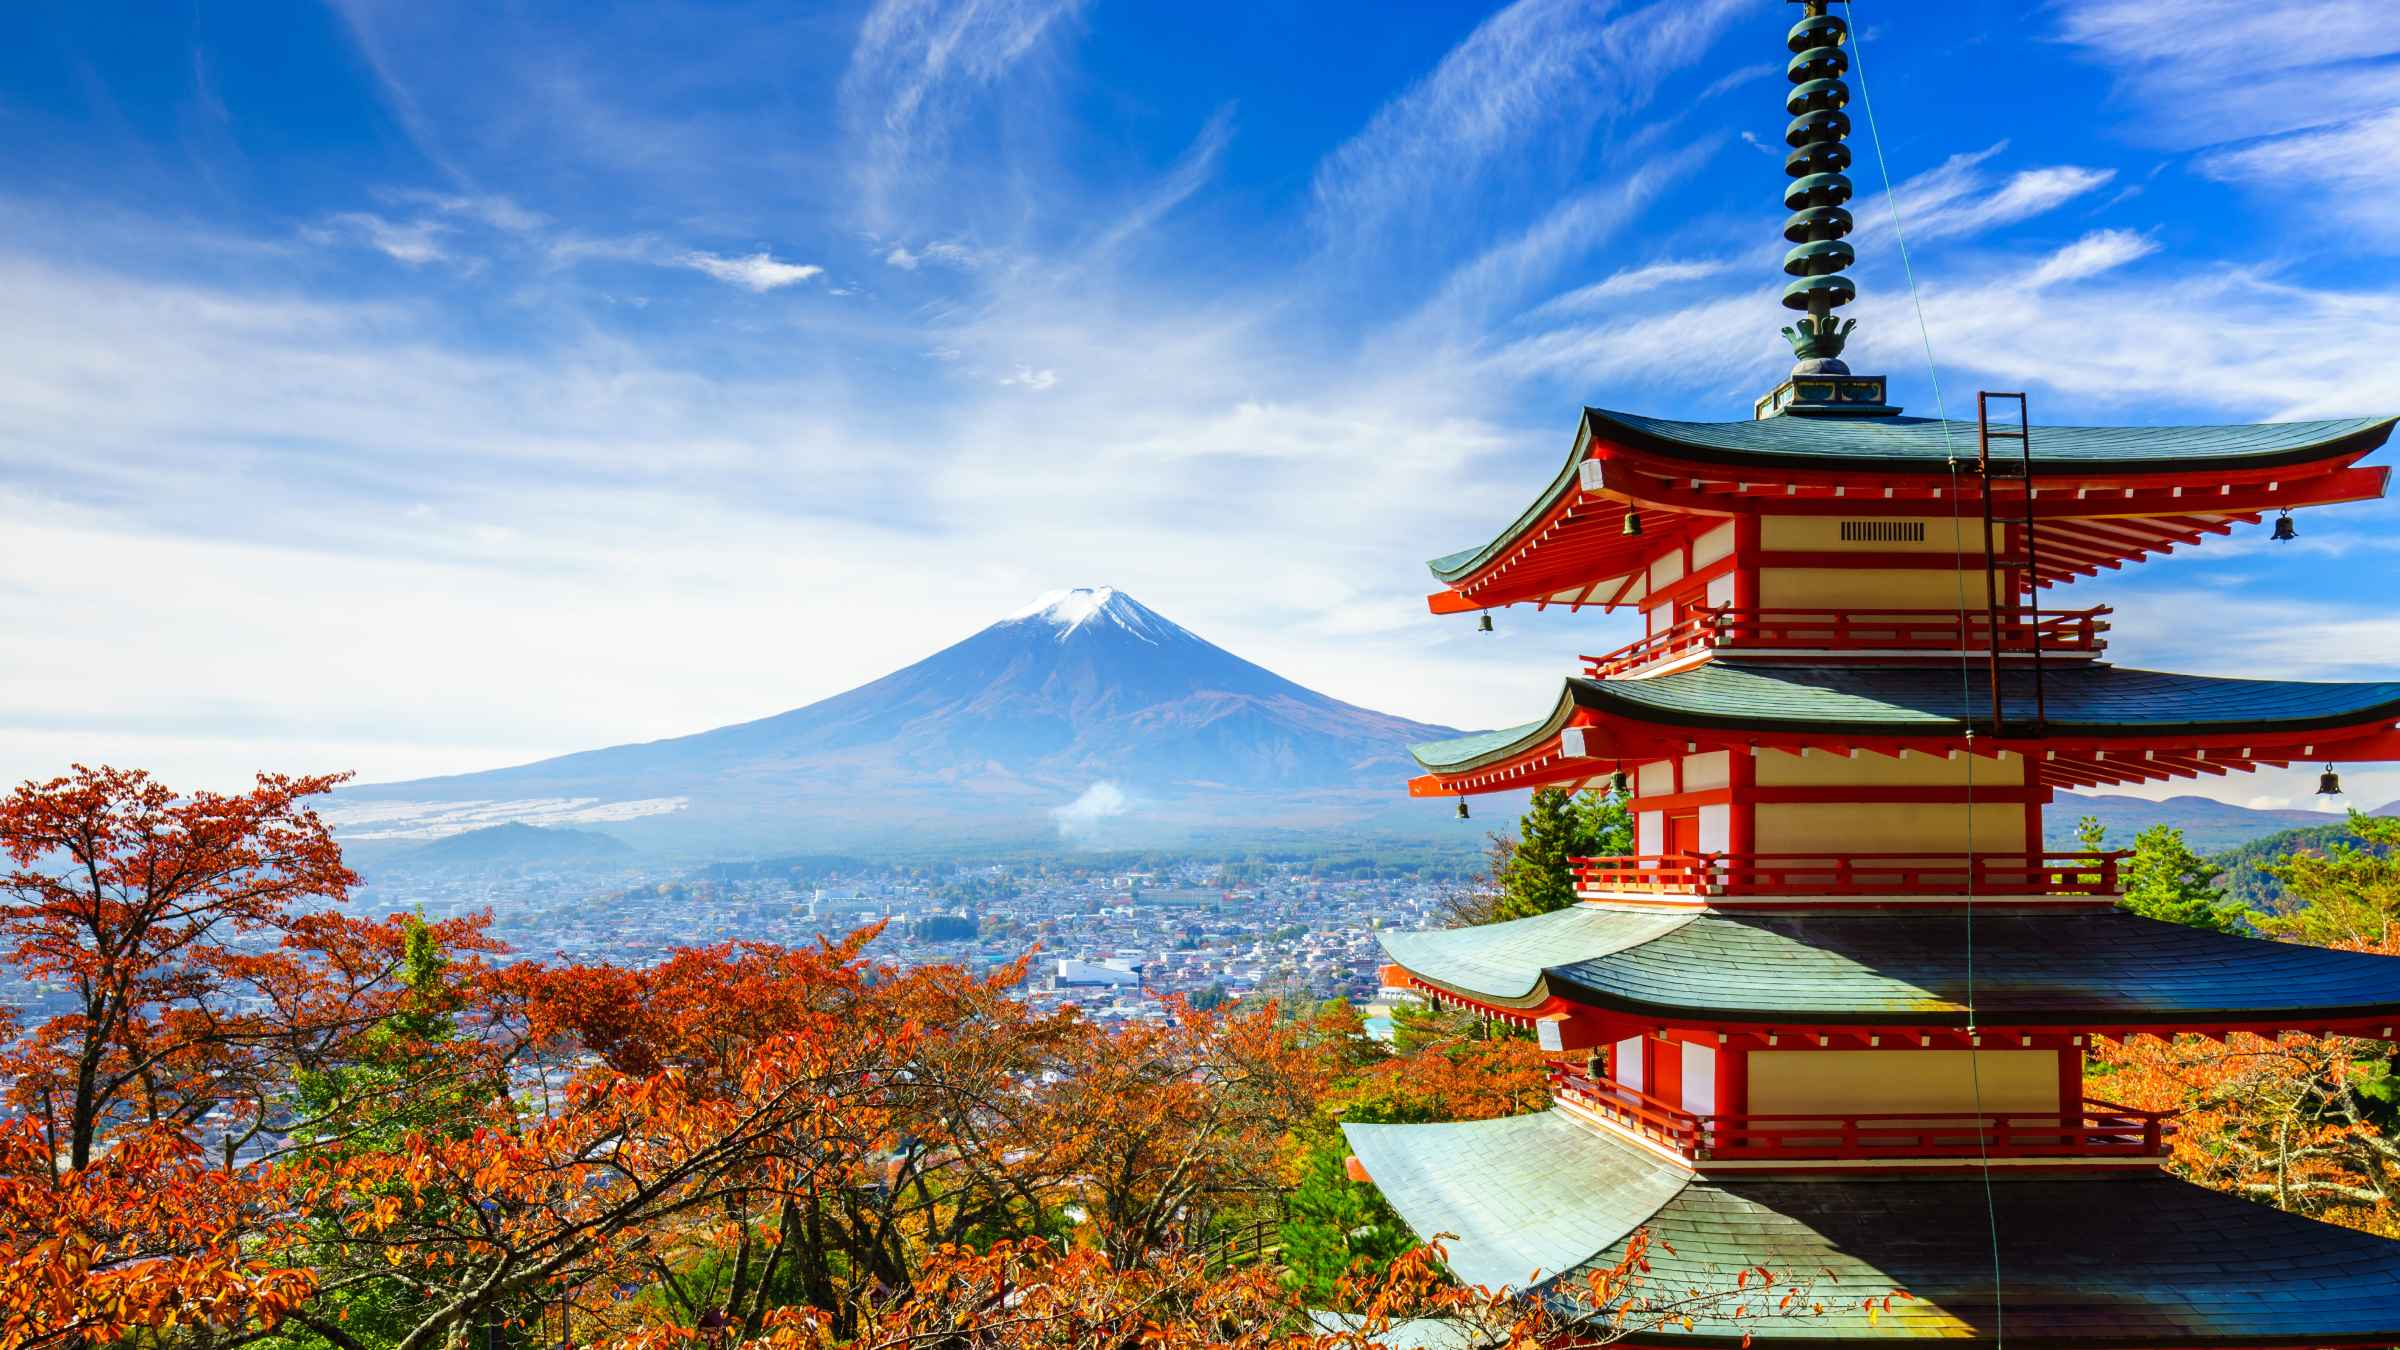 Japan 2021: Top 10 Tours, Trips & Activities (with Photos) - Things to Do  in Japan | GetYourGuide